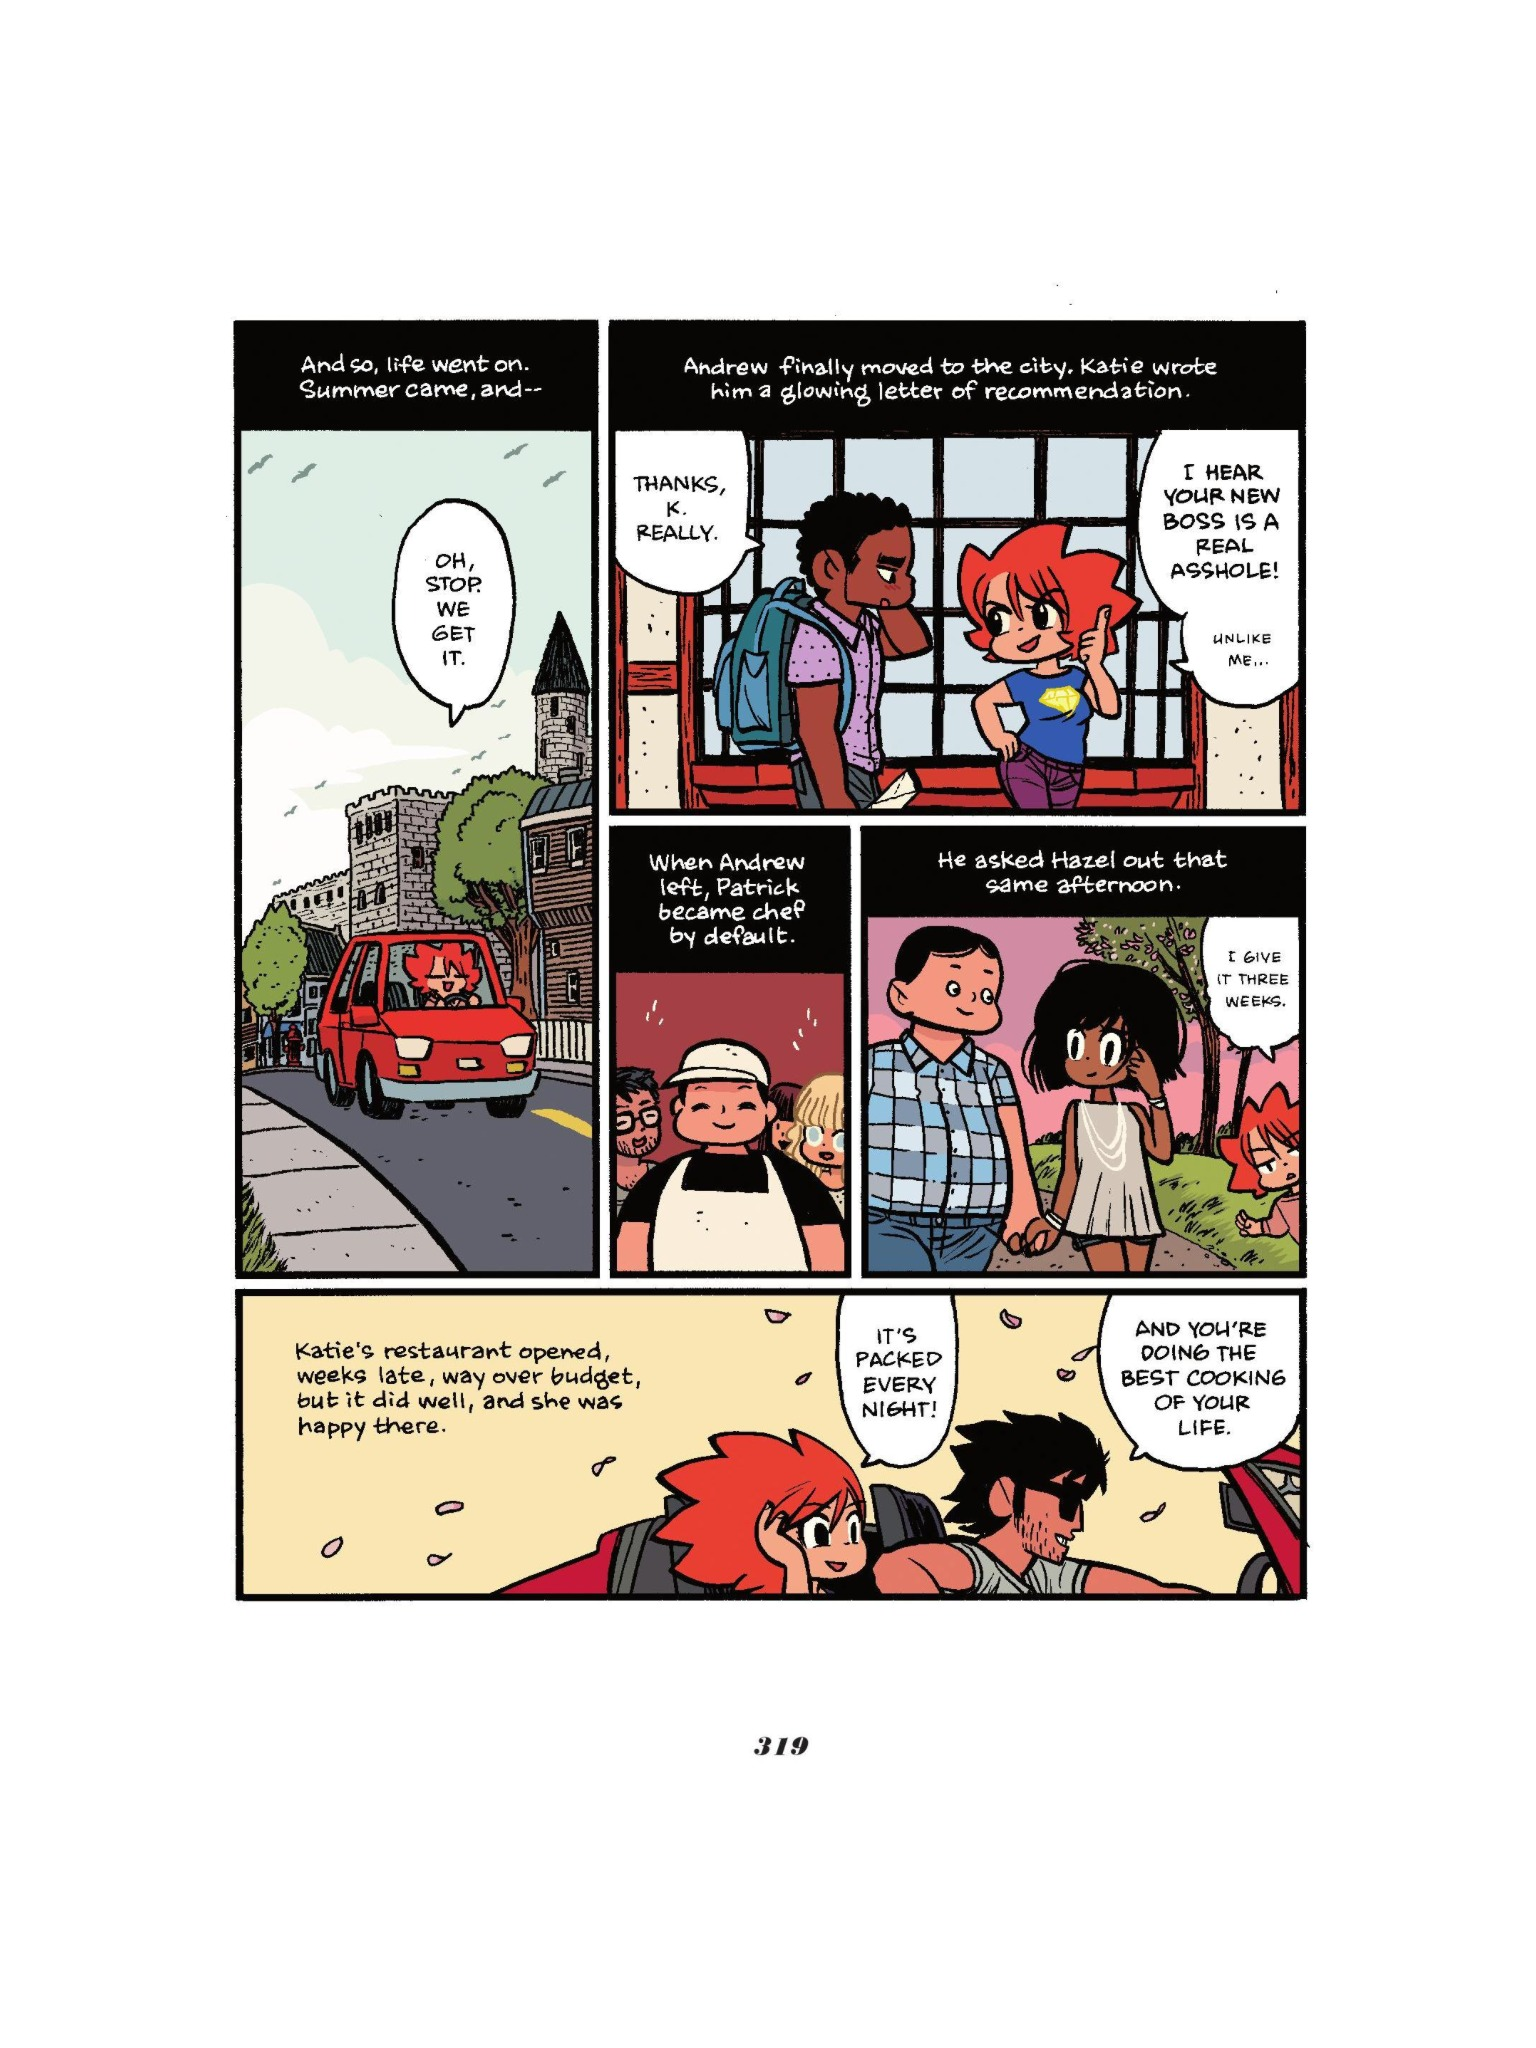 Read online Seconds comic -  Issue # Full - 319